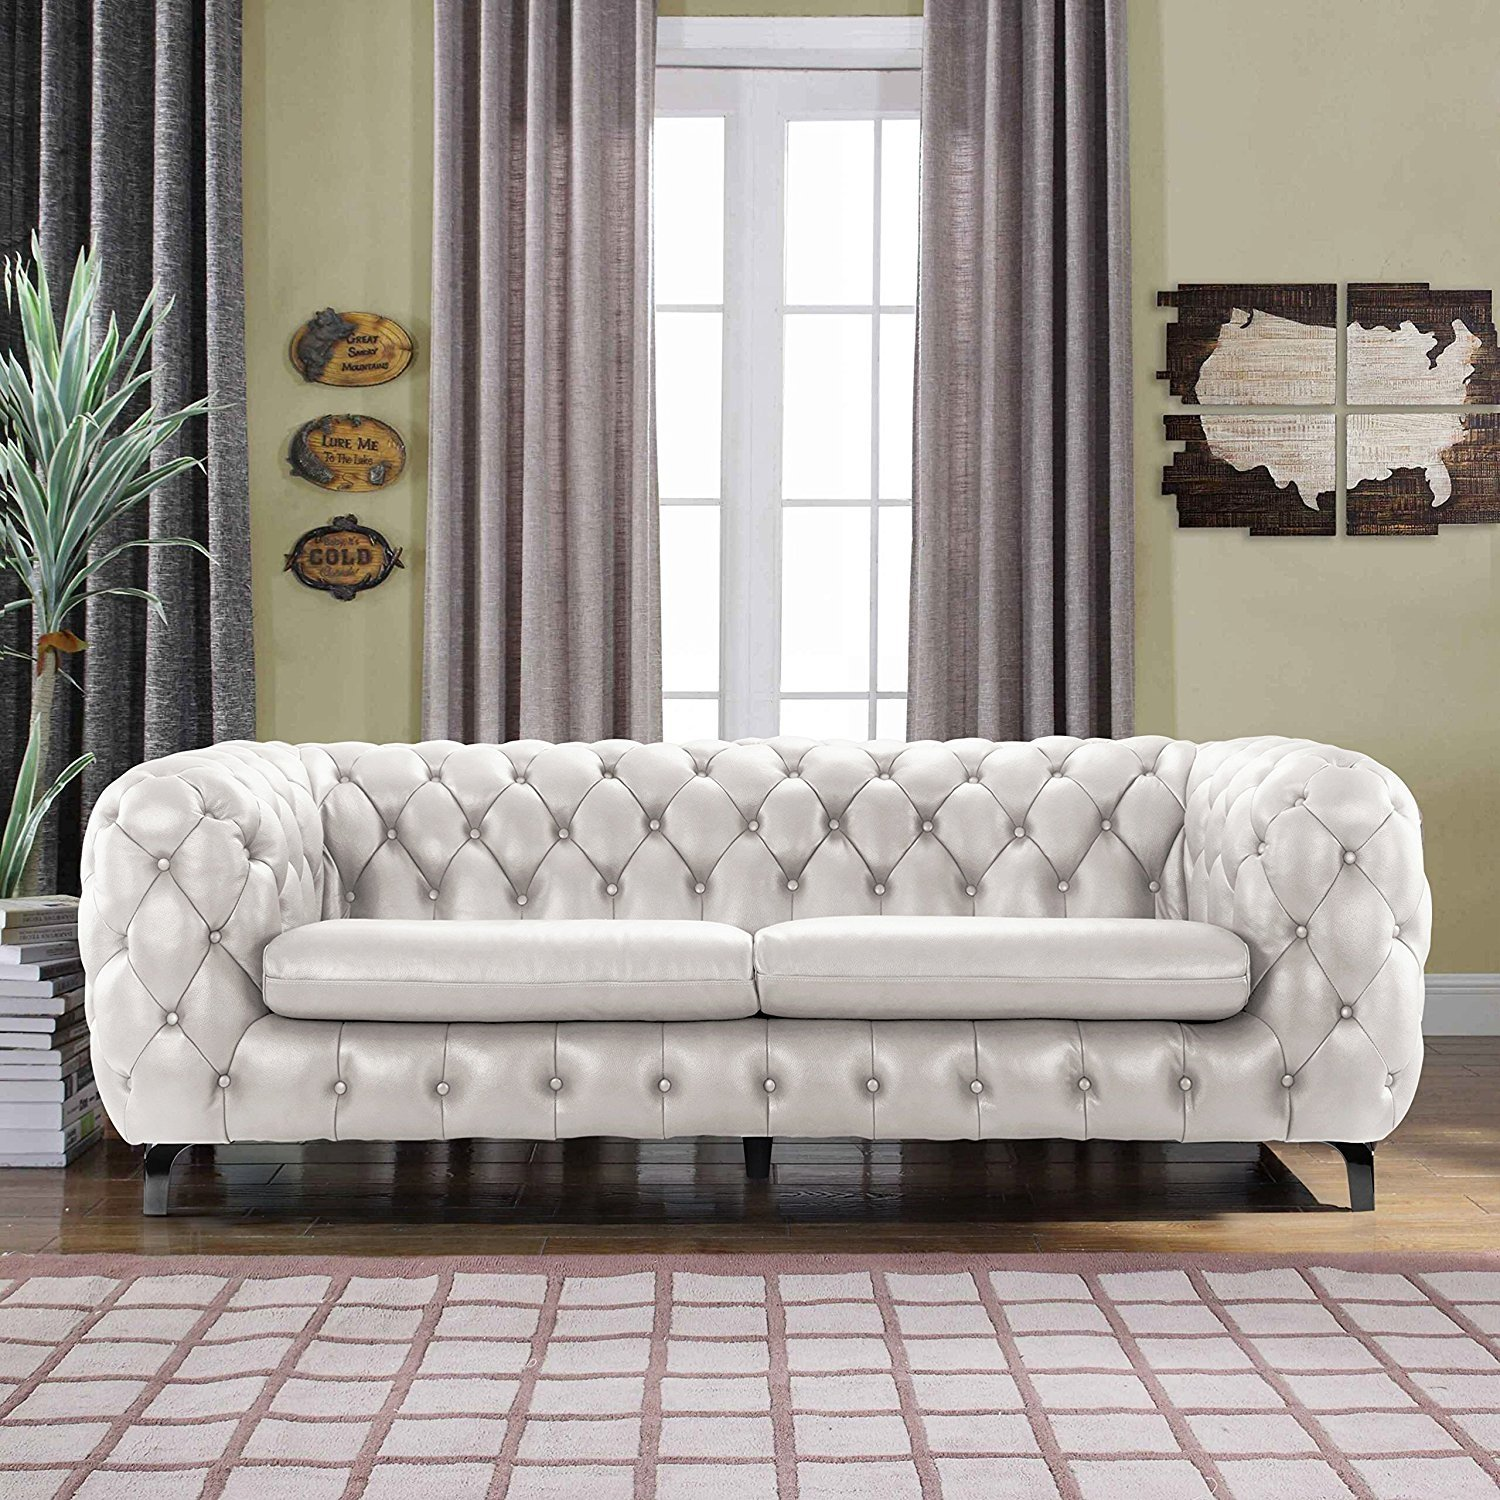 Stupendous Details About Modern Club Frame Sofa Real Leather Match Tufted Chesterfield Couch Ivory Machost Co Dining Chair Design Ideas Machostcouk